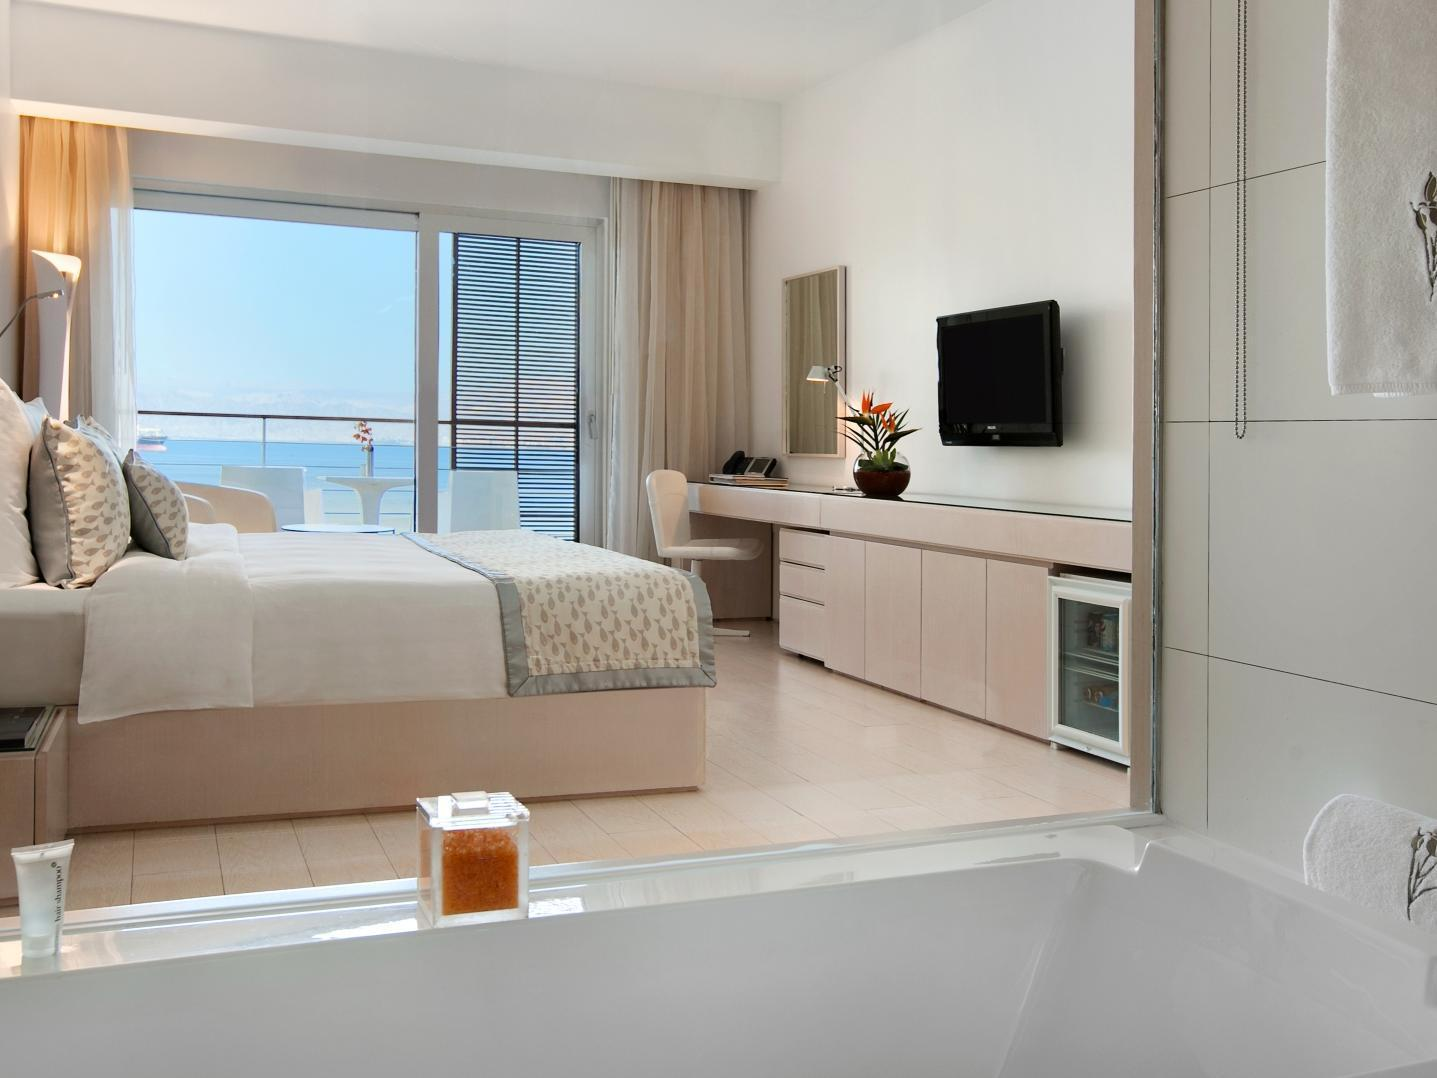 Quarto Duplo Deluxe com vista para o mar (Deluxe Double Room with Sea View)